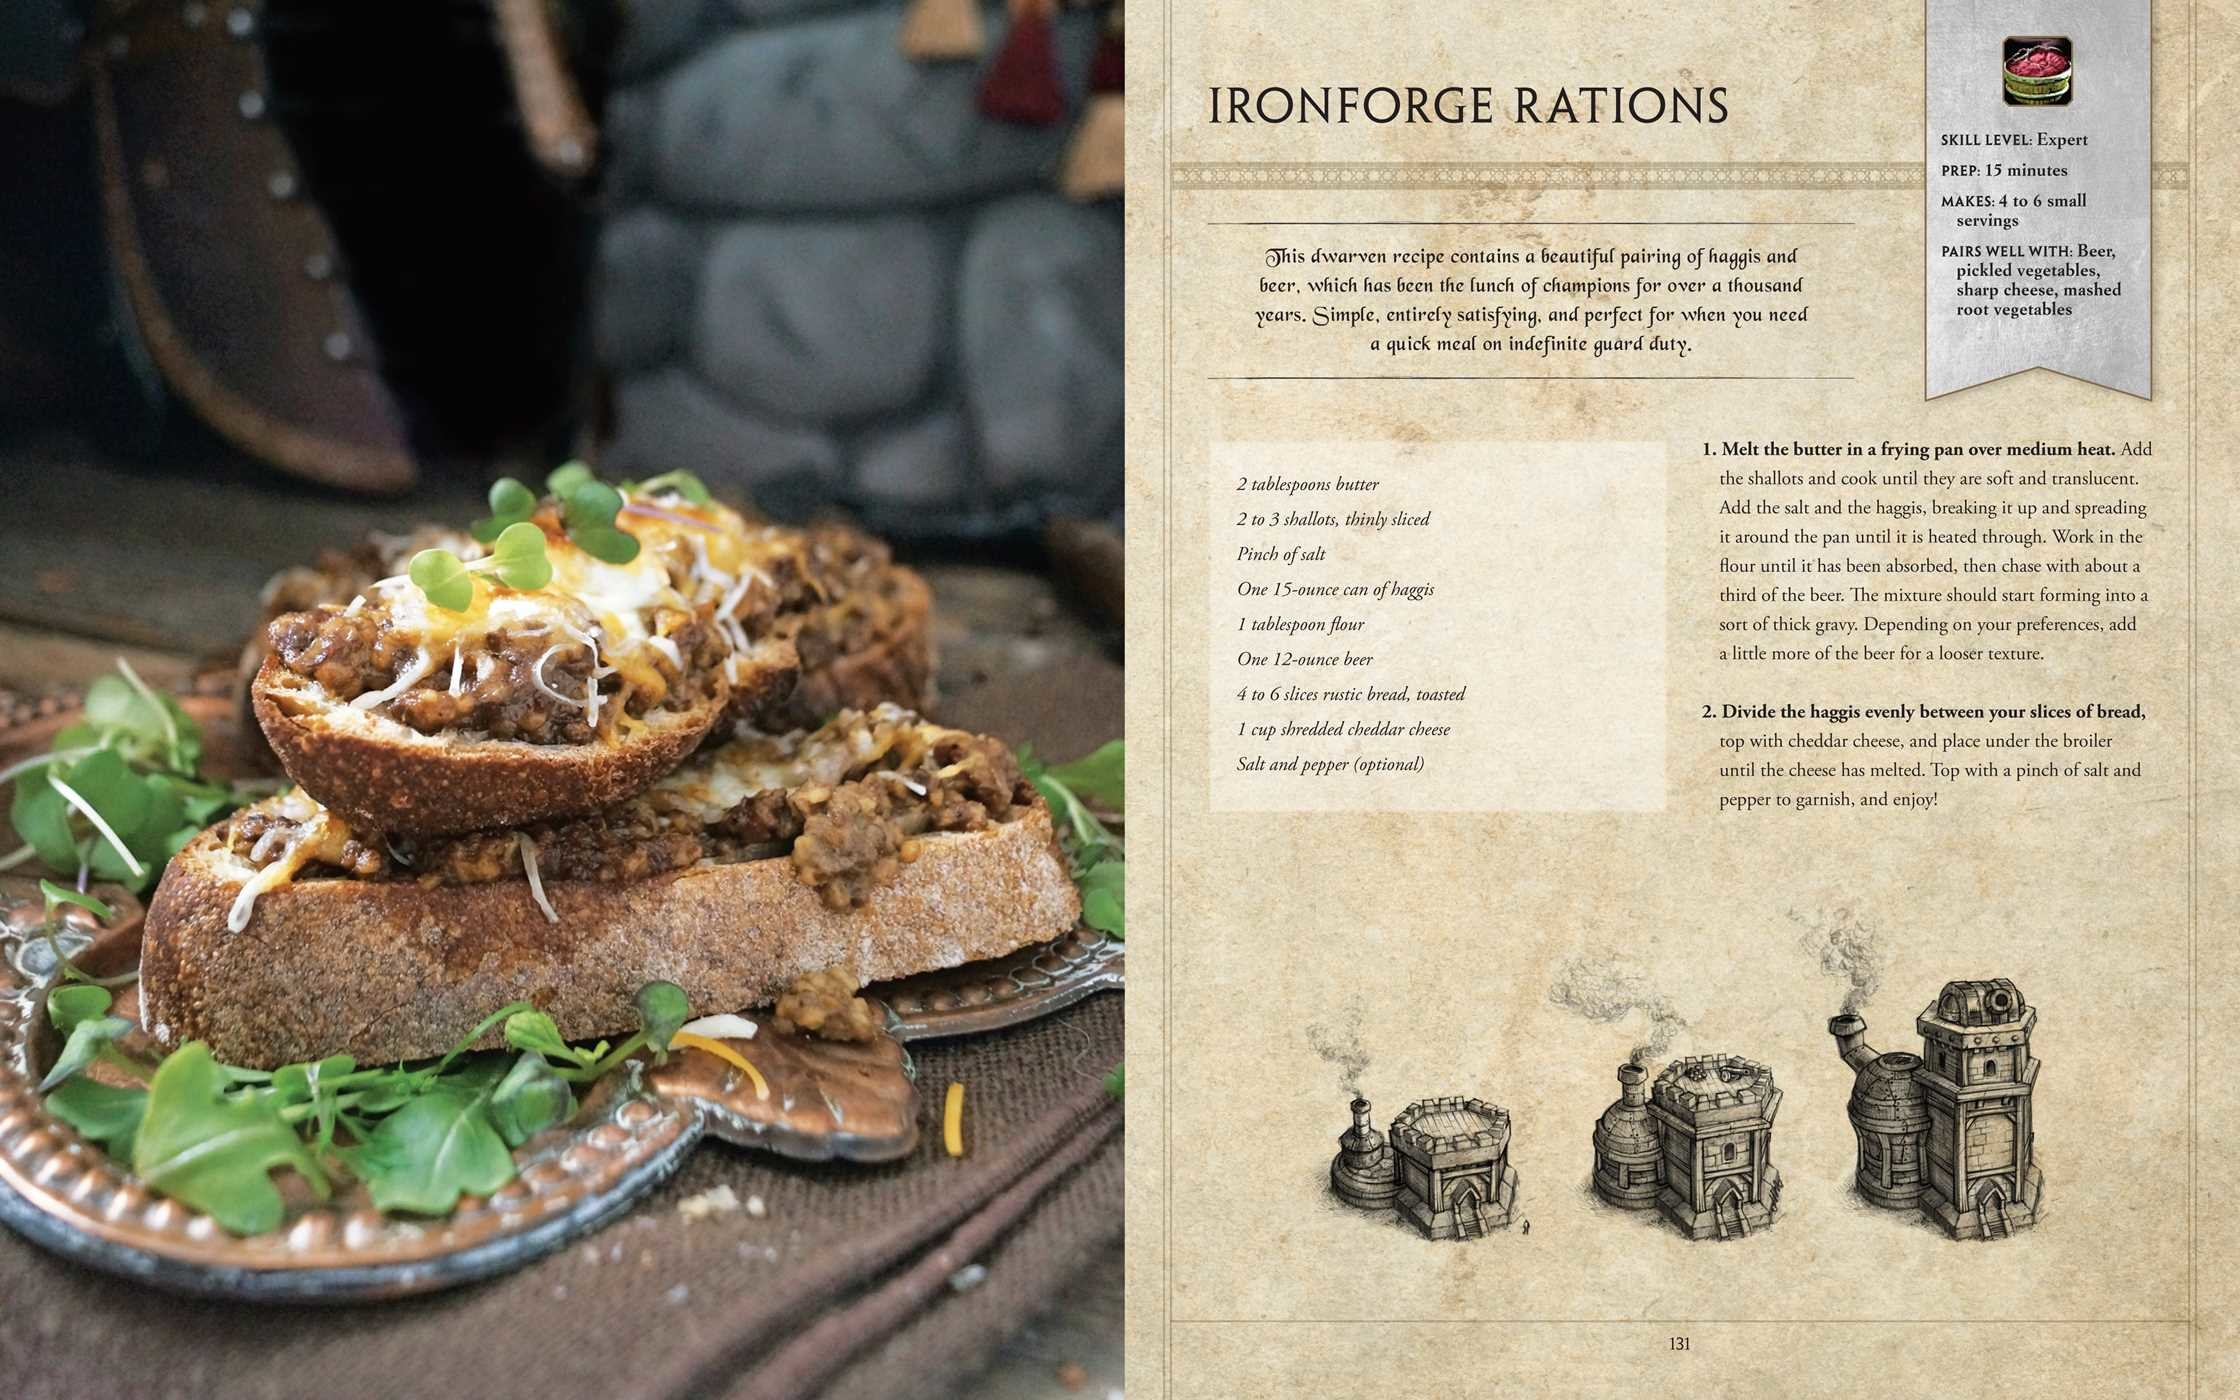 Culture world of warcraft the official cookbook is coming g33k hq this tome of exquisite delicacies also includes a few tasty recipes for brew including greatfathers winter ale junglevine wine and winter veil egg nog forumfinder Images